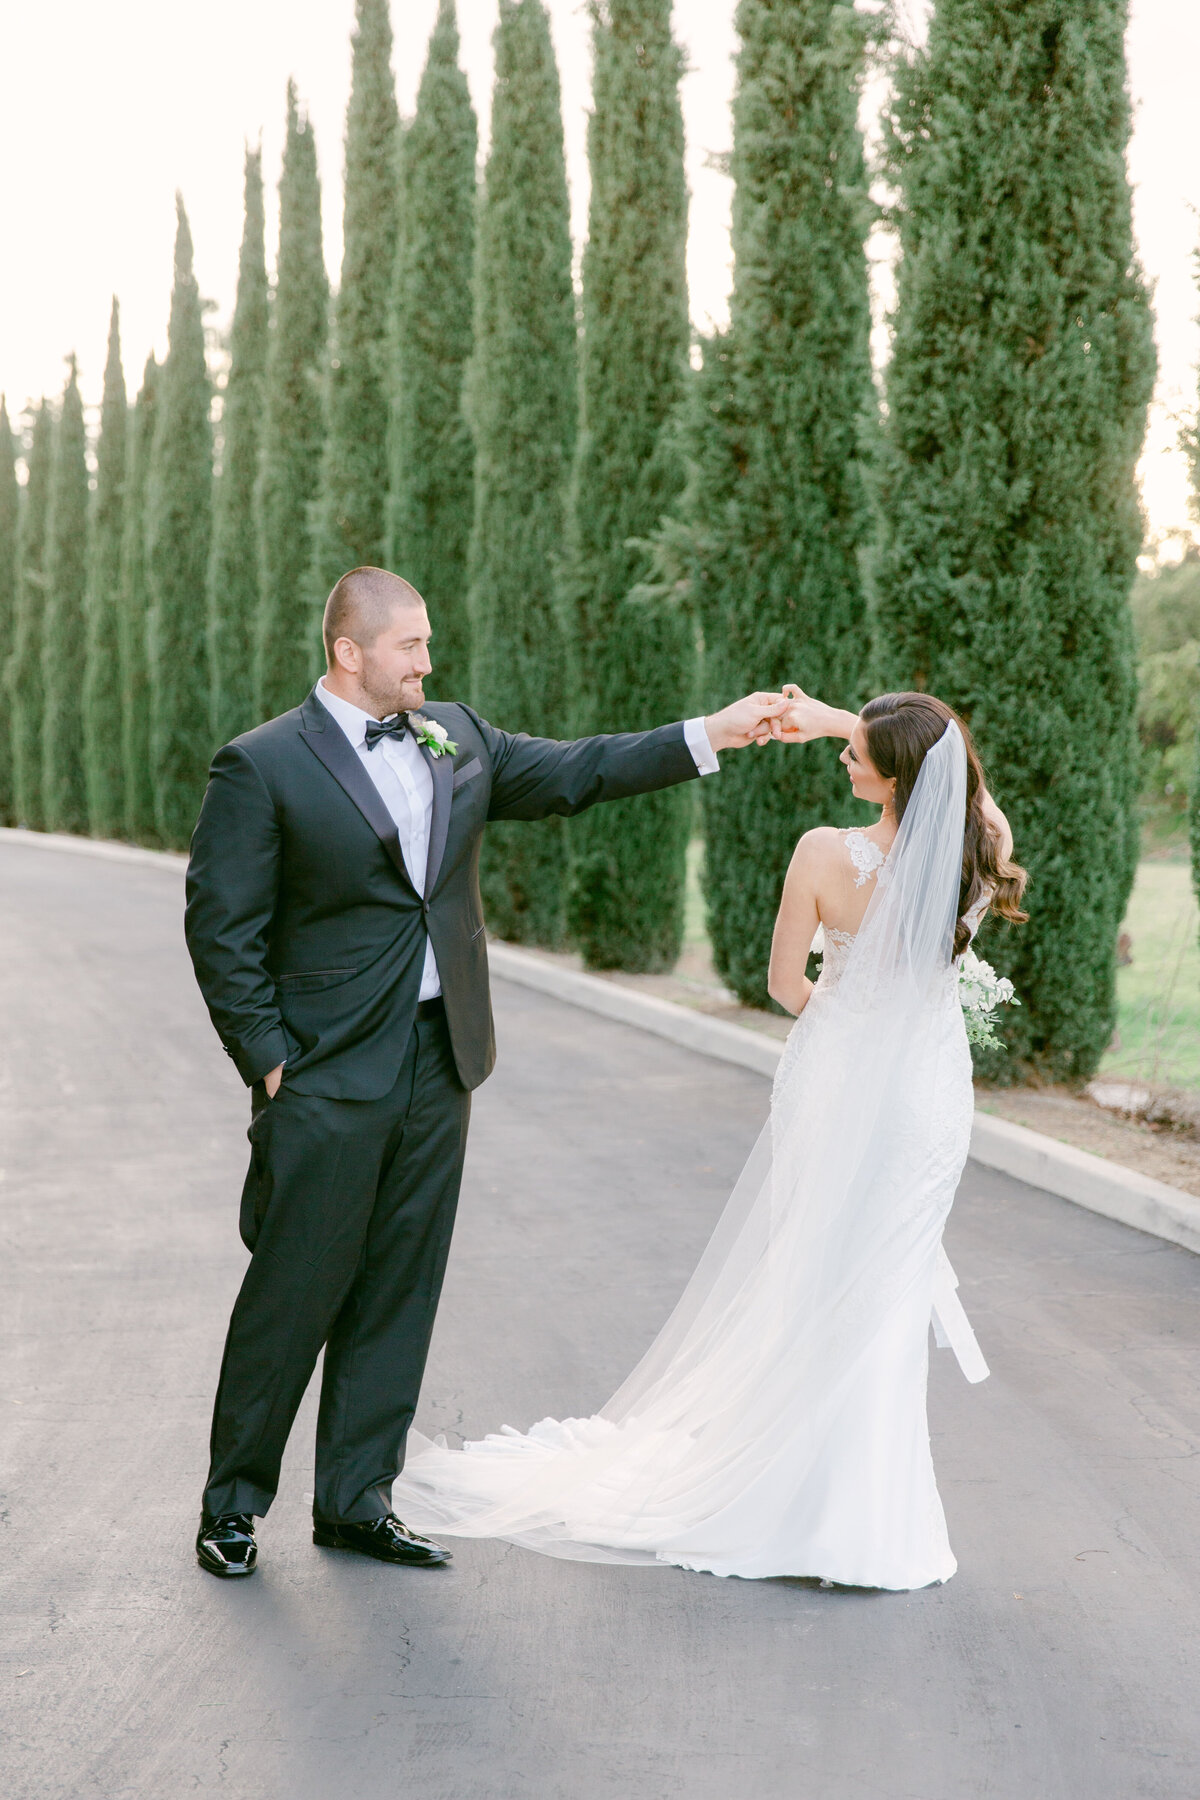 Tretter_Wedding_Carmel_Mountain_Ranch_San_Diego_California_Jacksonville_Florida_Devon_Donnahoo_Photography_1612